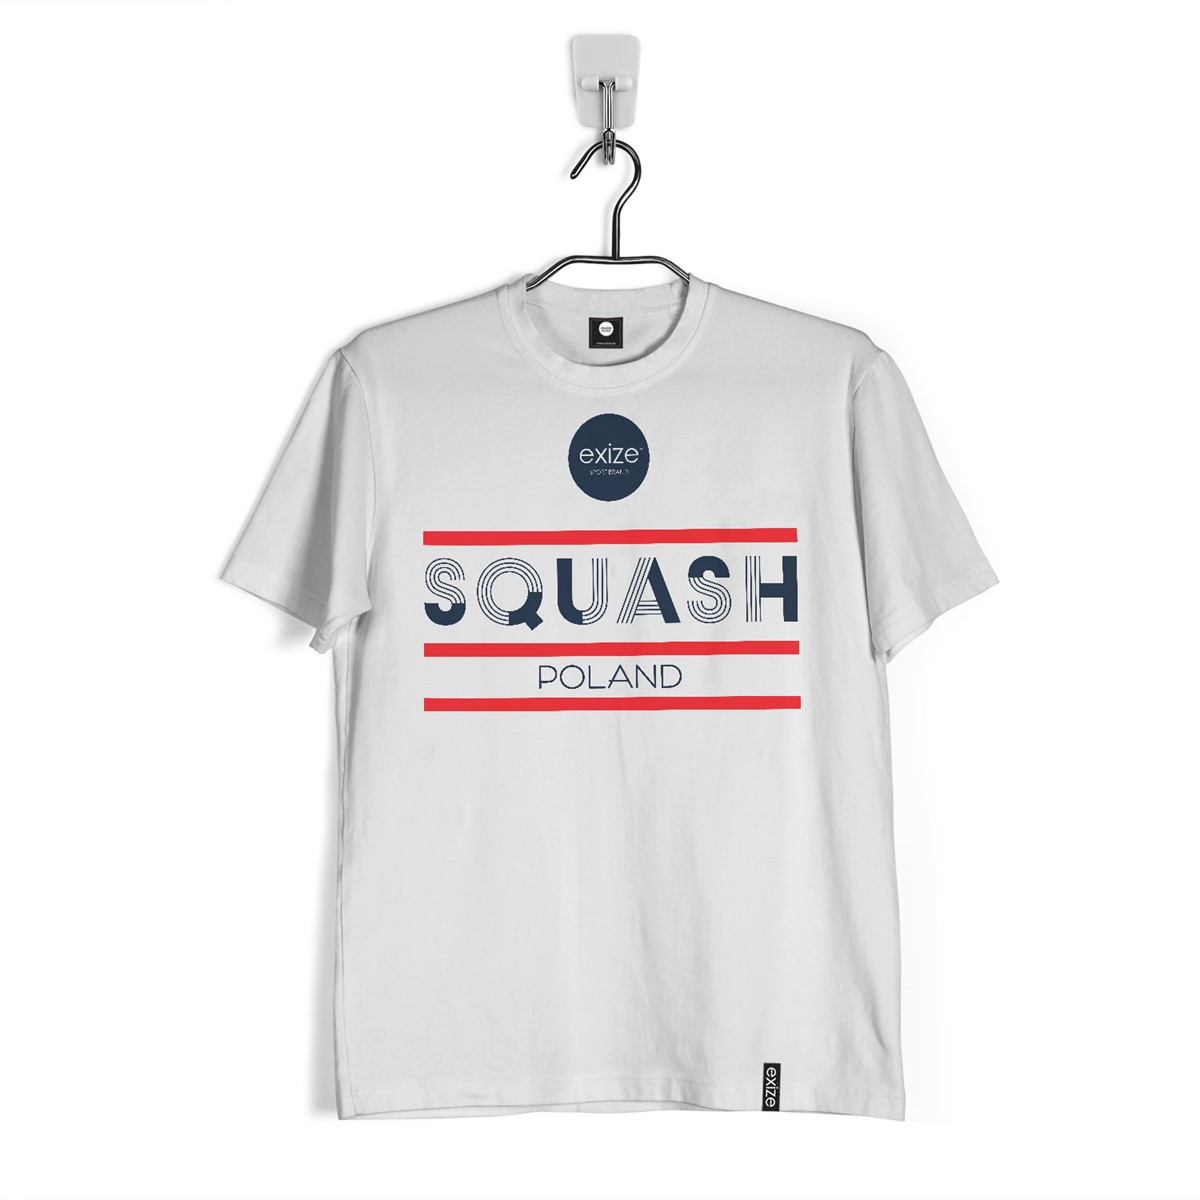 T-shirt SQSH Poland White